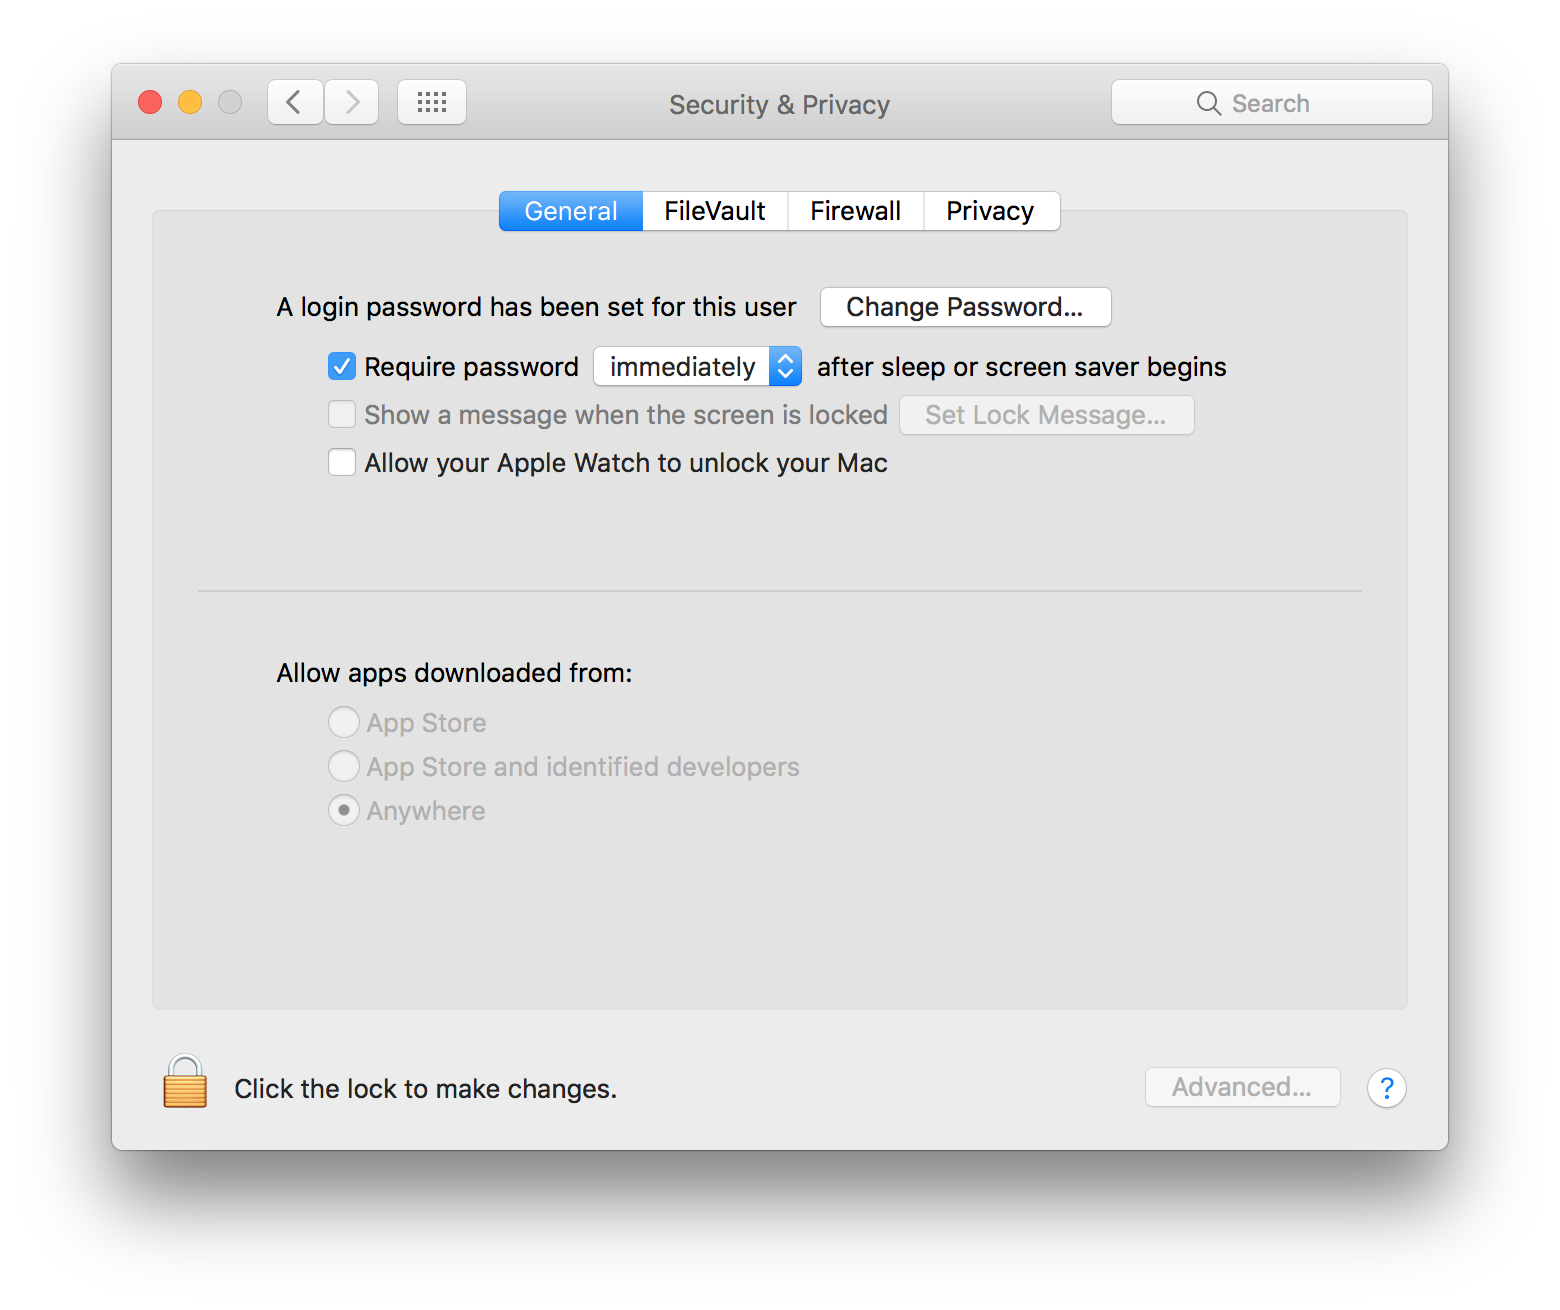 How to require password immediately after sleep or screen saver begins on Mac